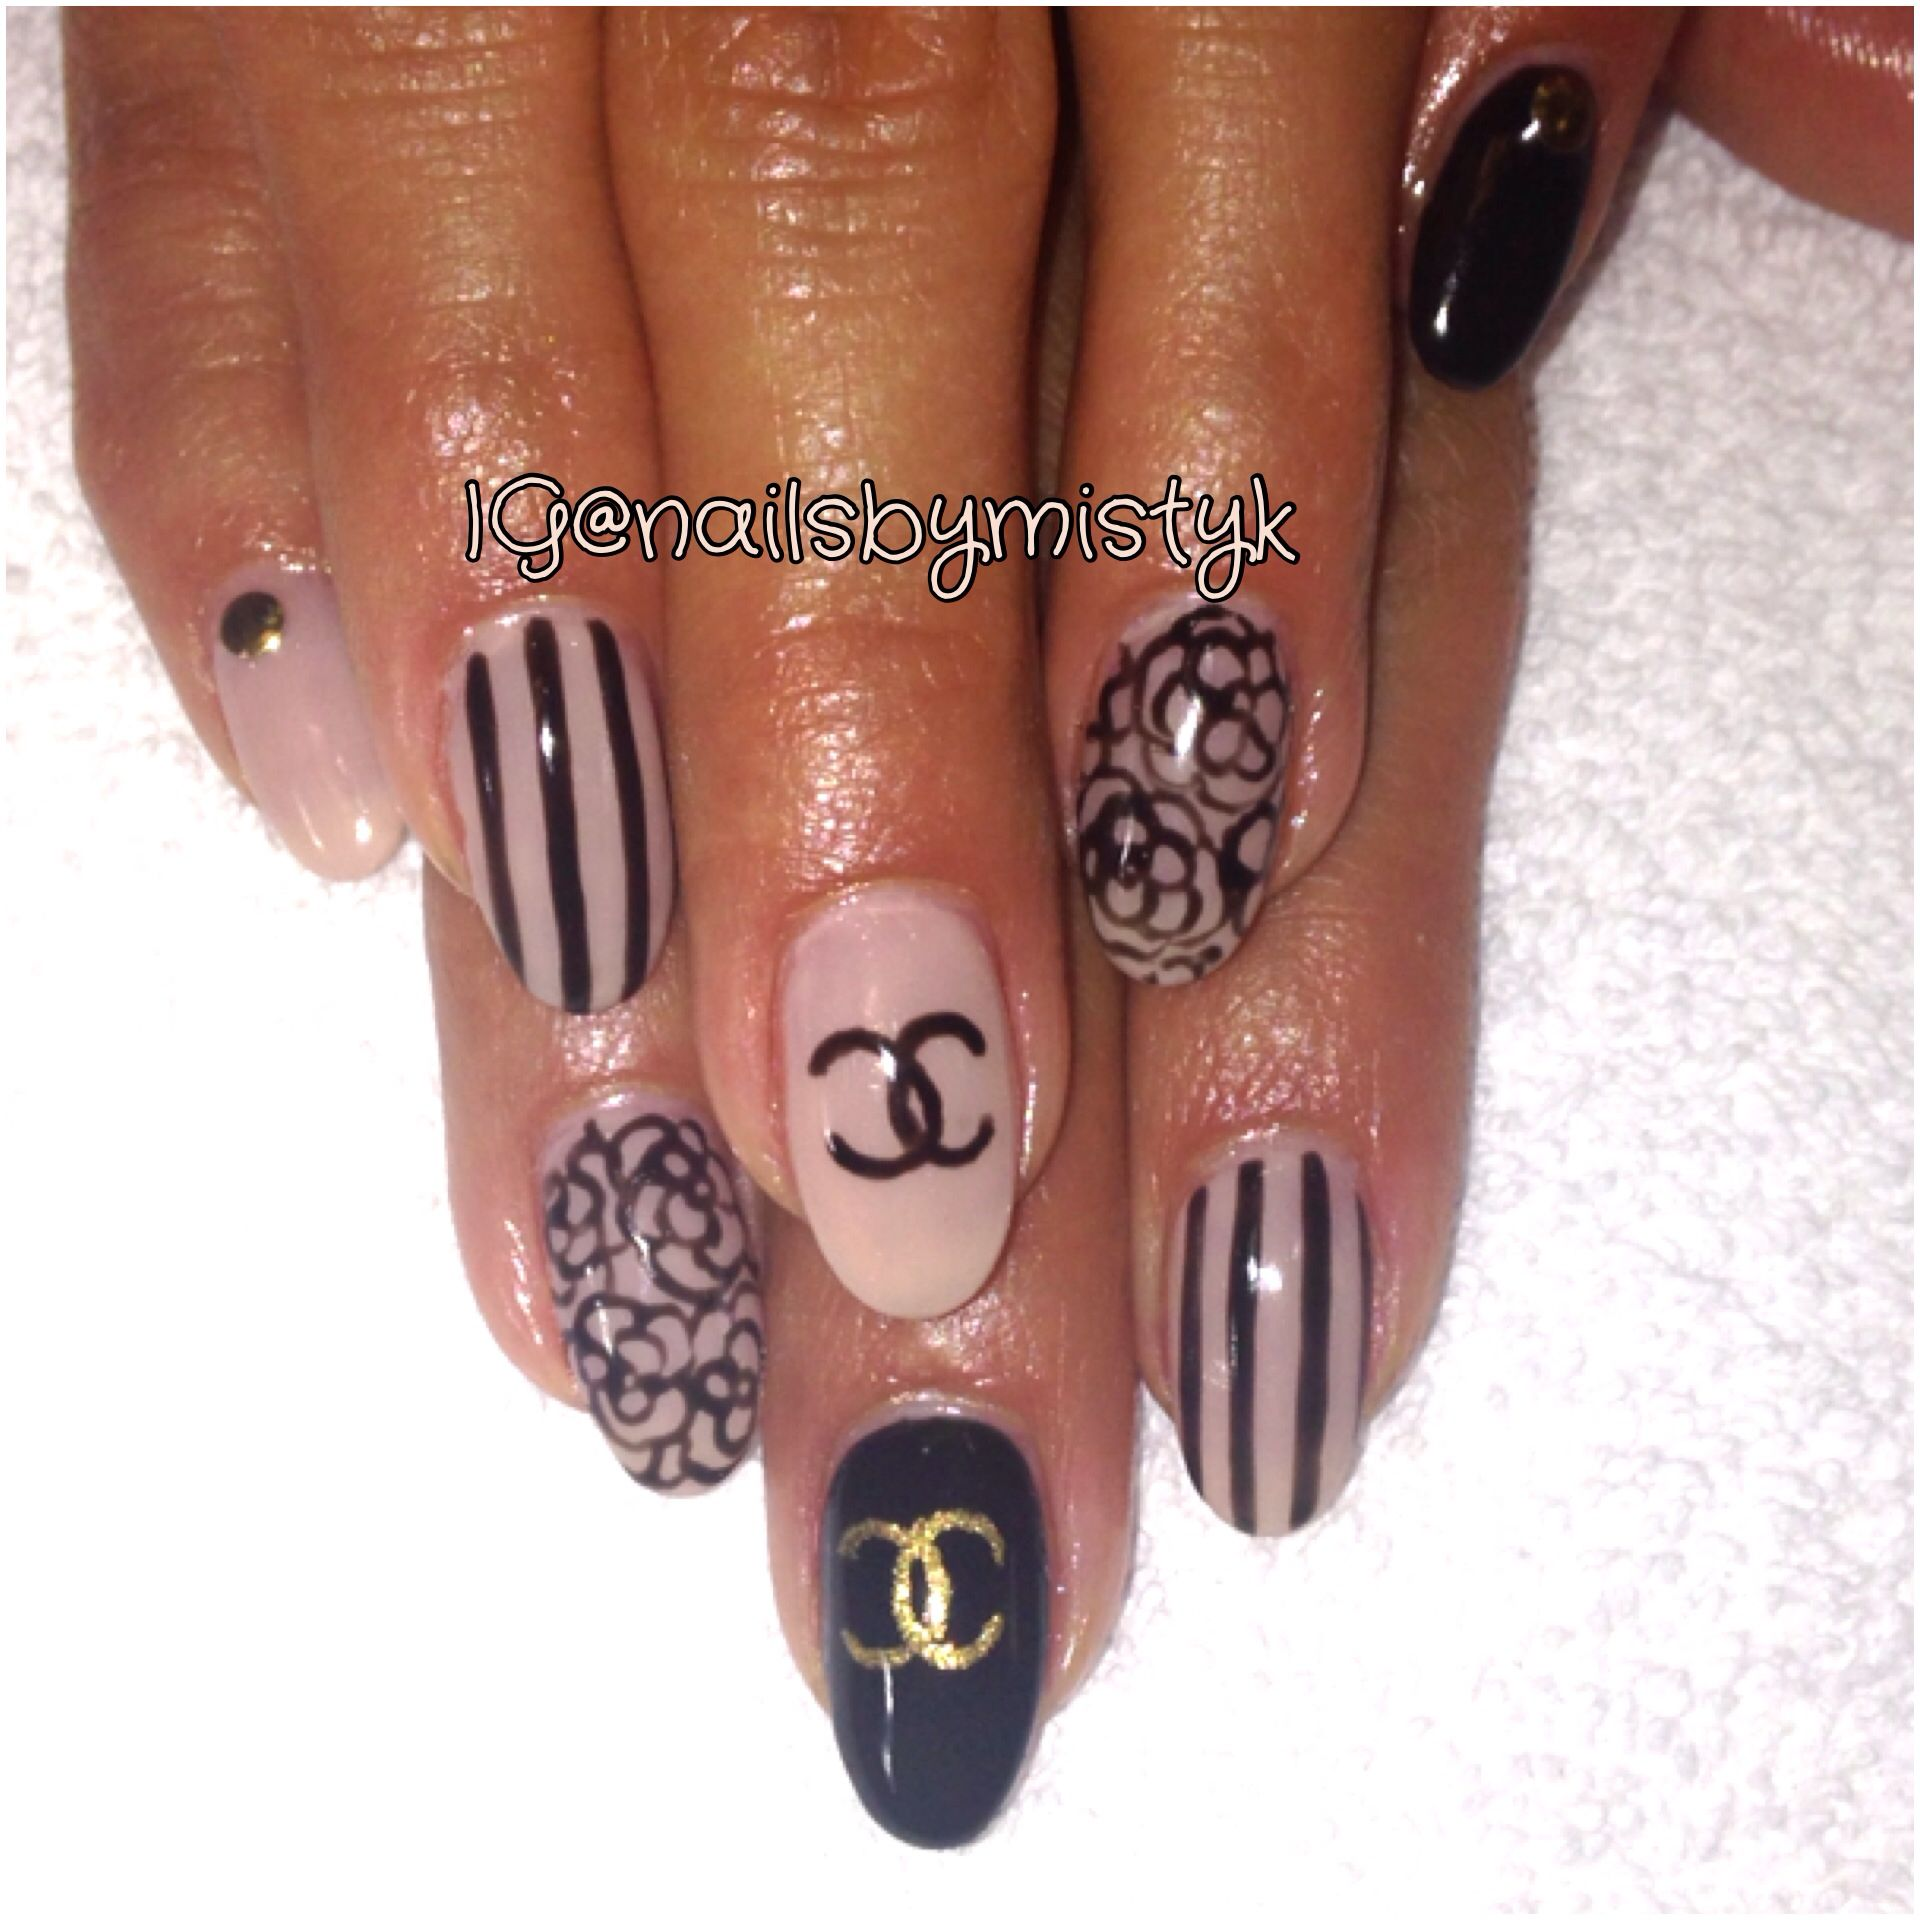 Coco Chanel Nail Art Black And Nude Nail Design Almond Nail Design